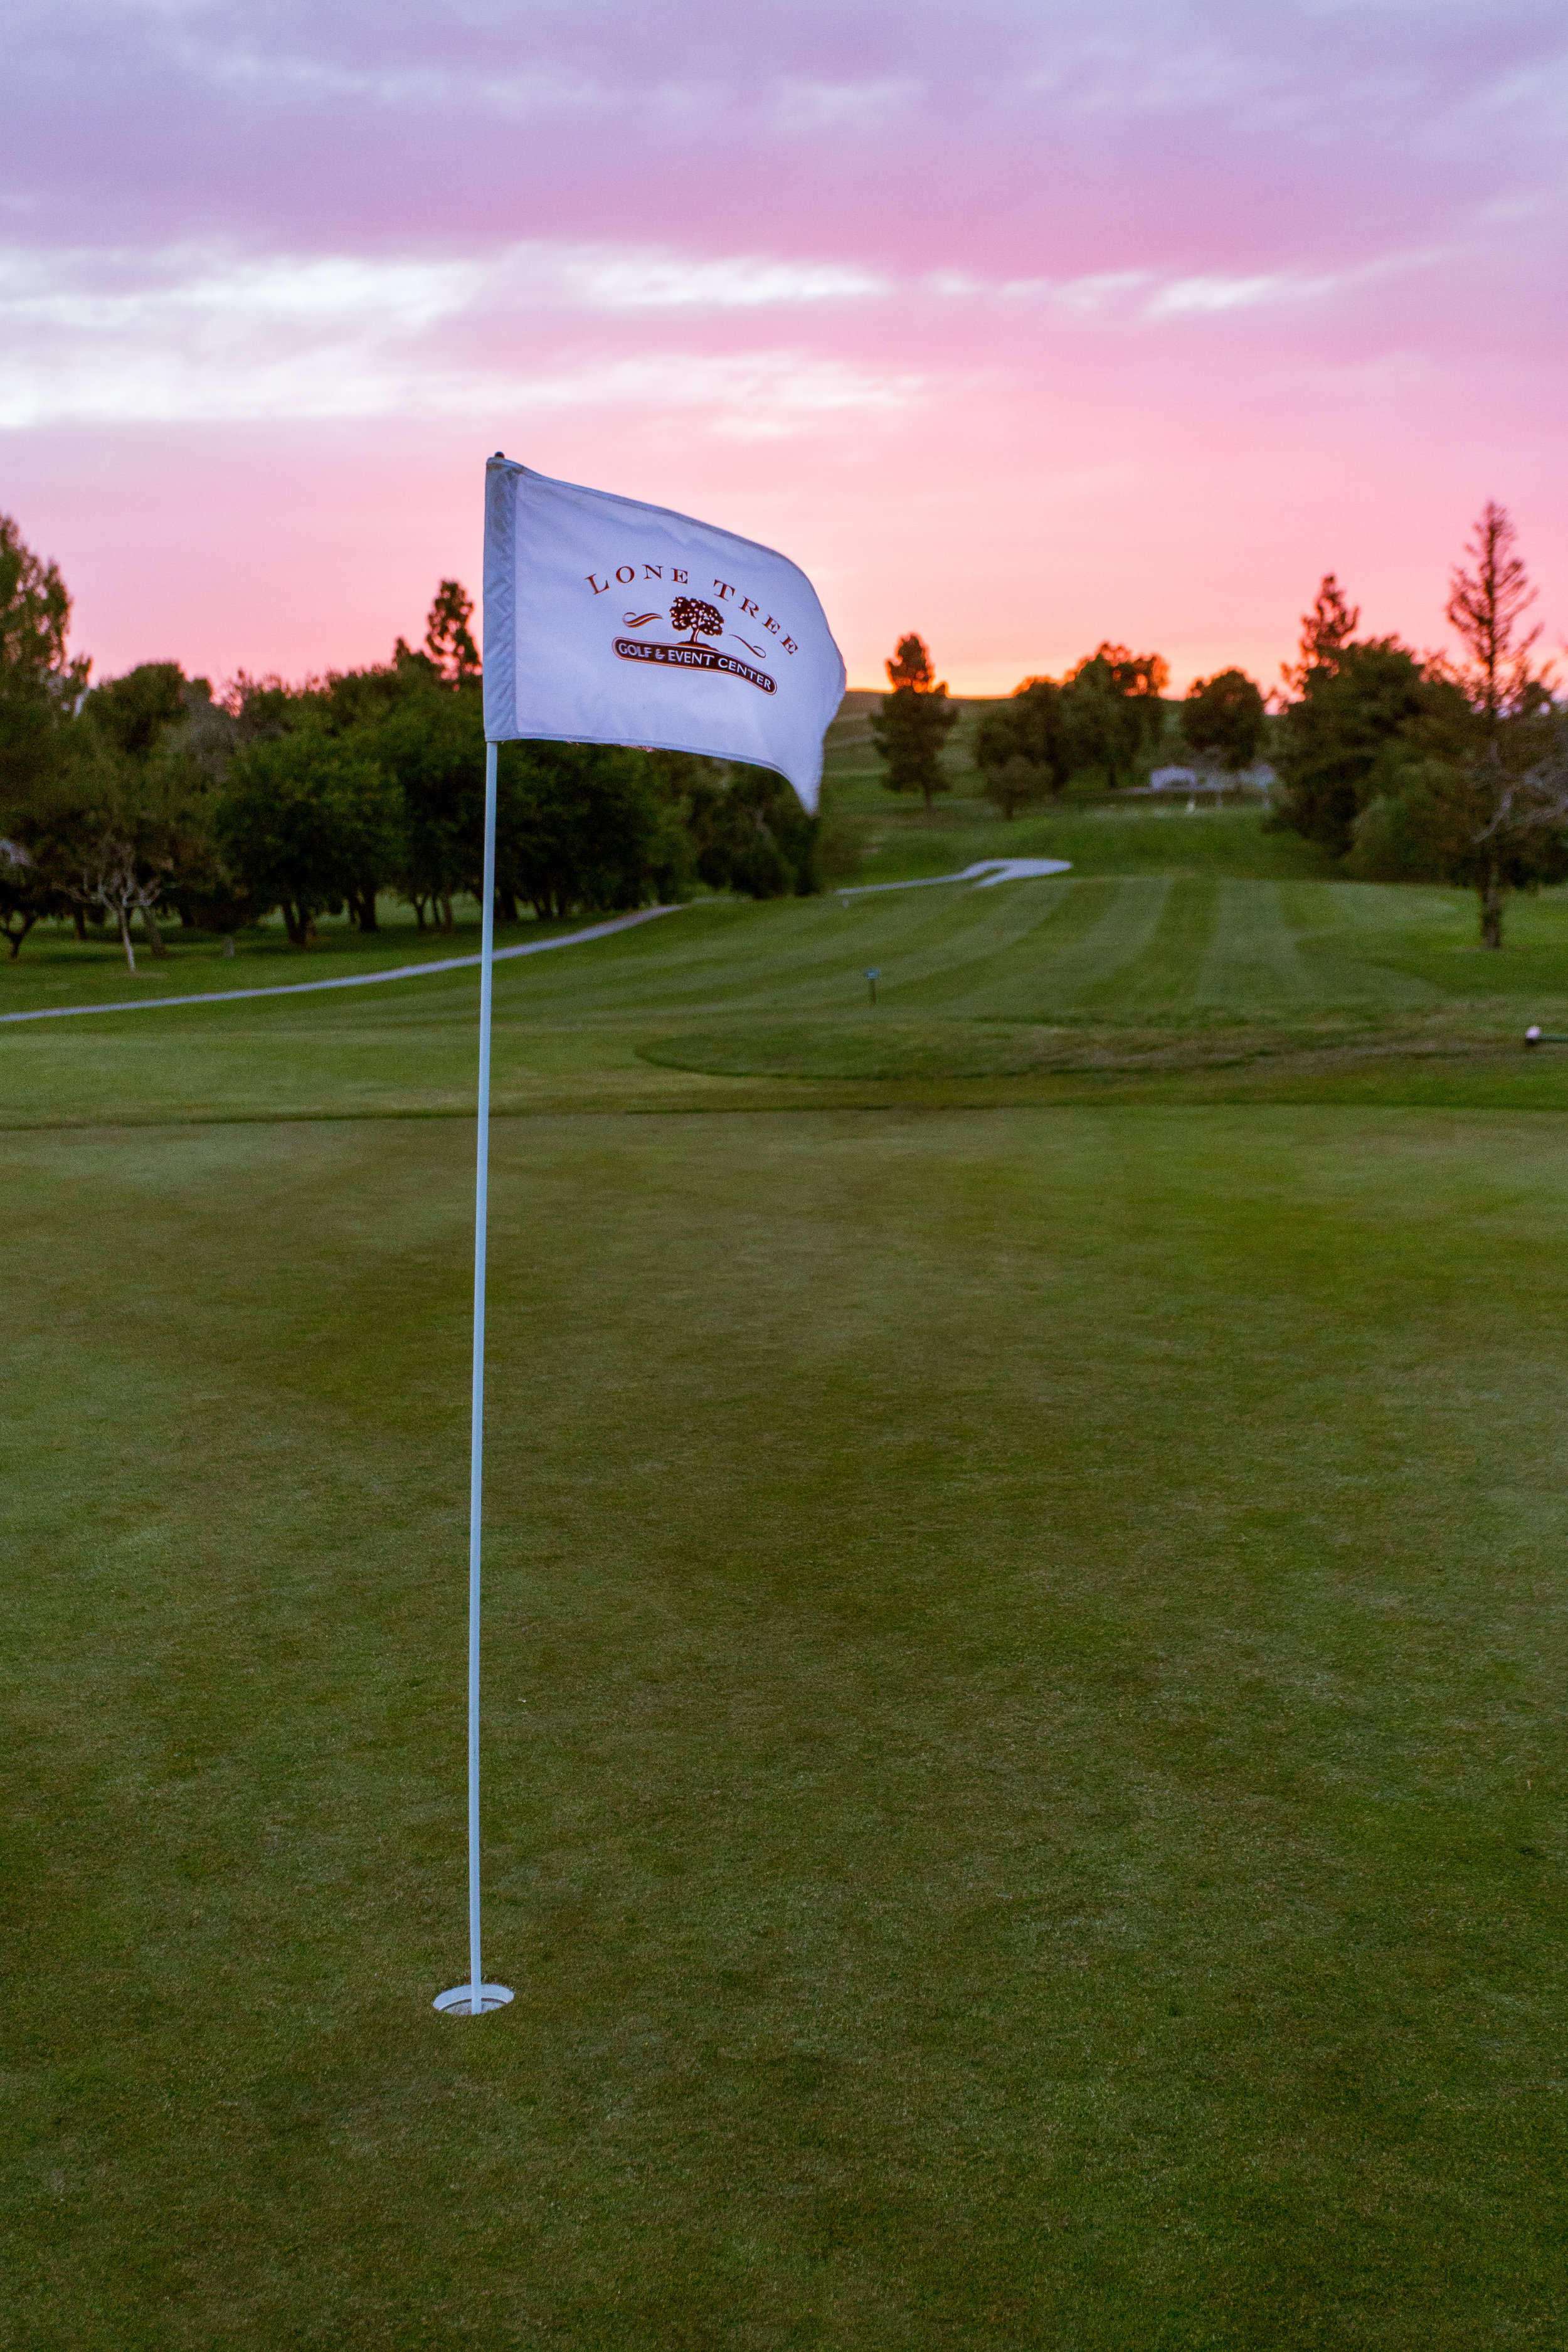 At Lone Tree Golf Course And Event Center facing West. Image taken on May 5th, 2017 at 8:11pm by Michael Pohl.